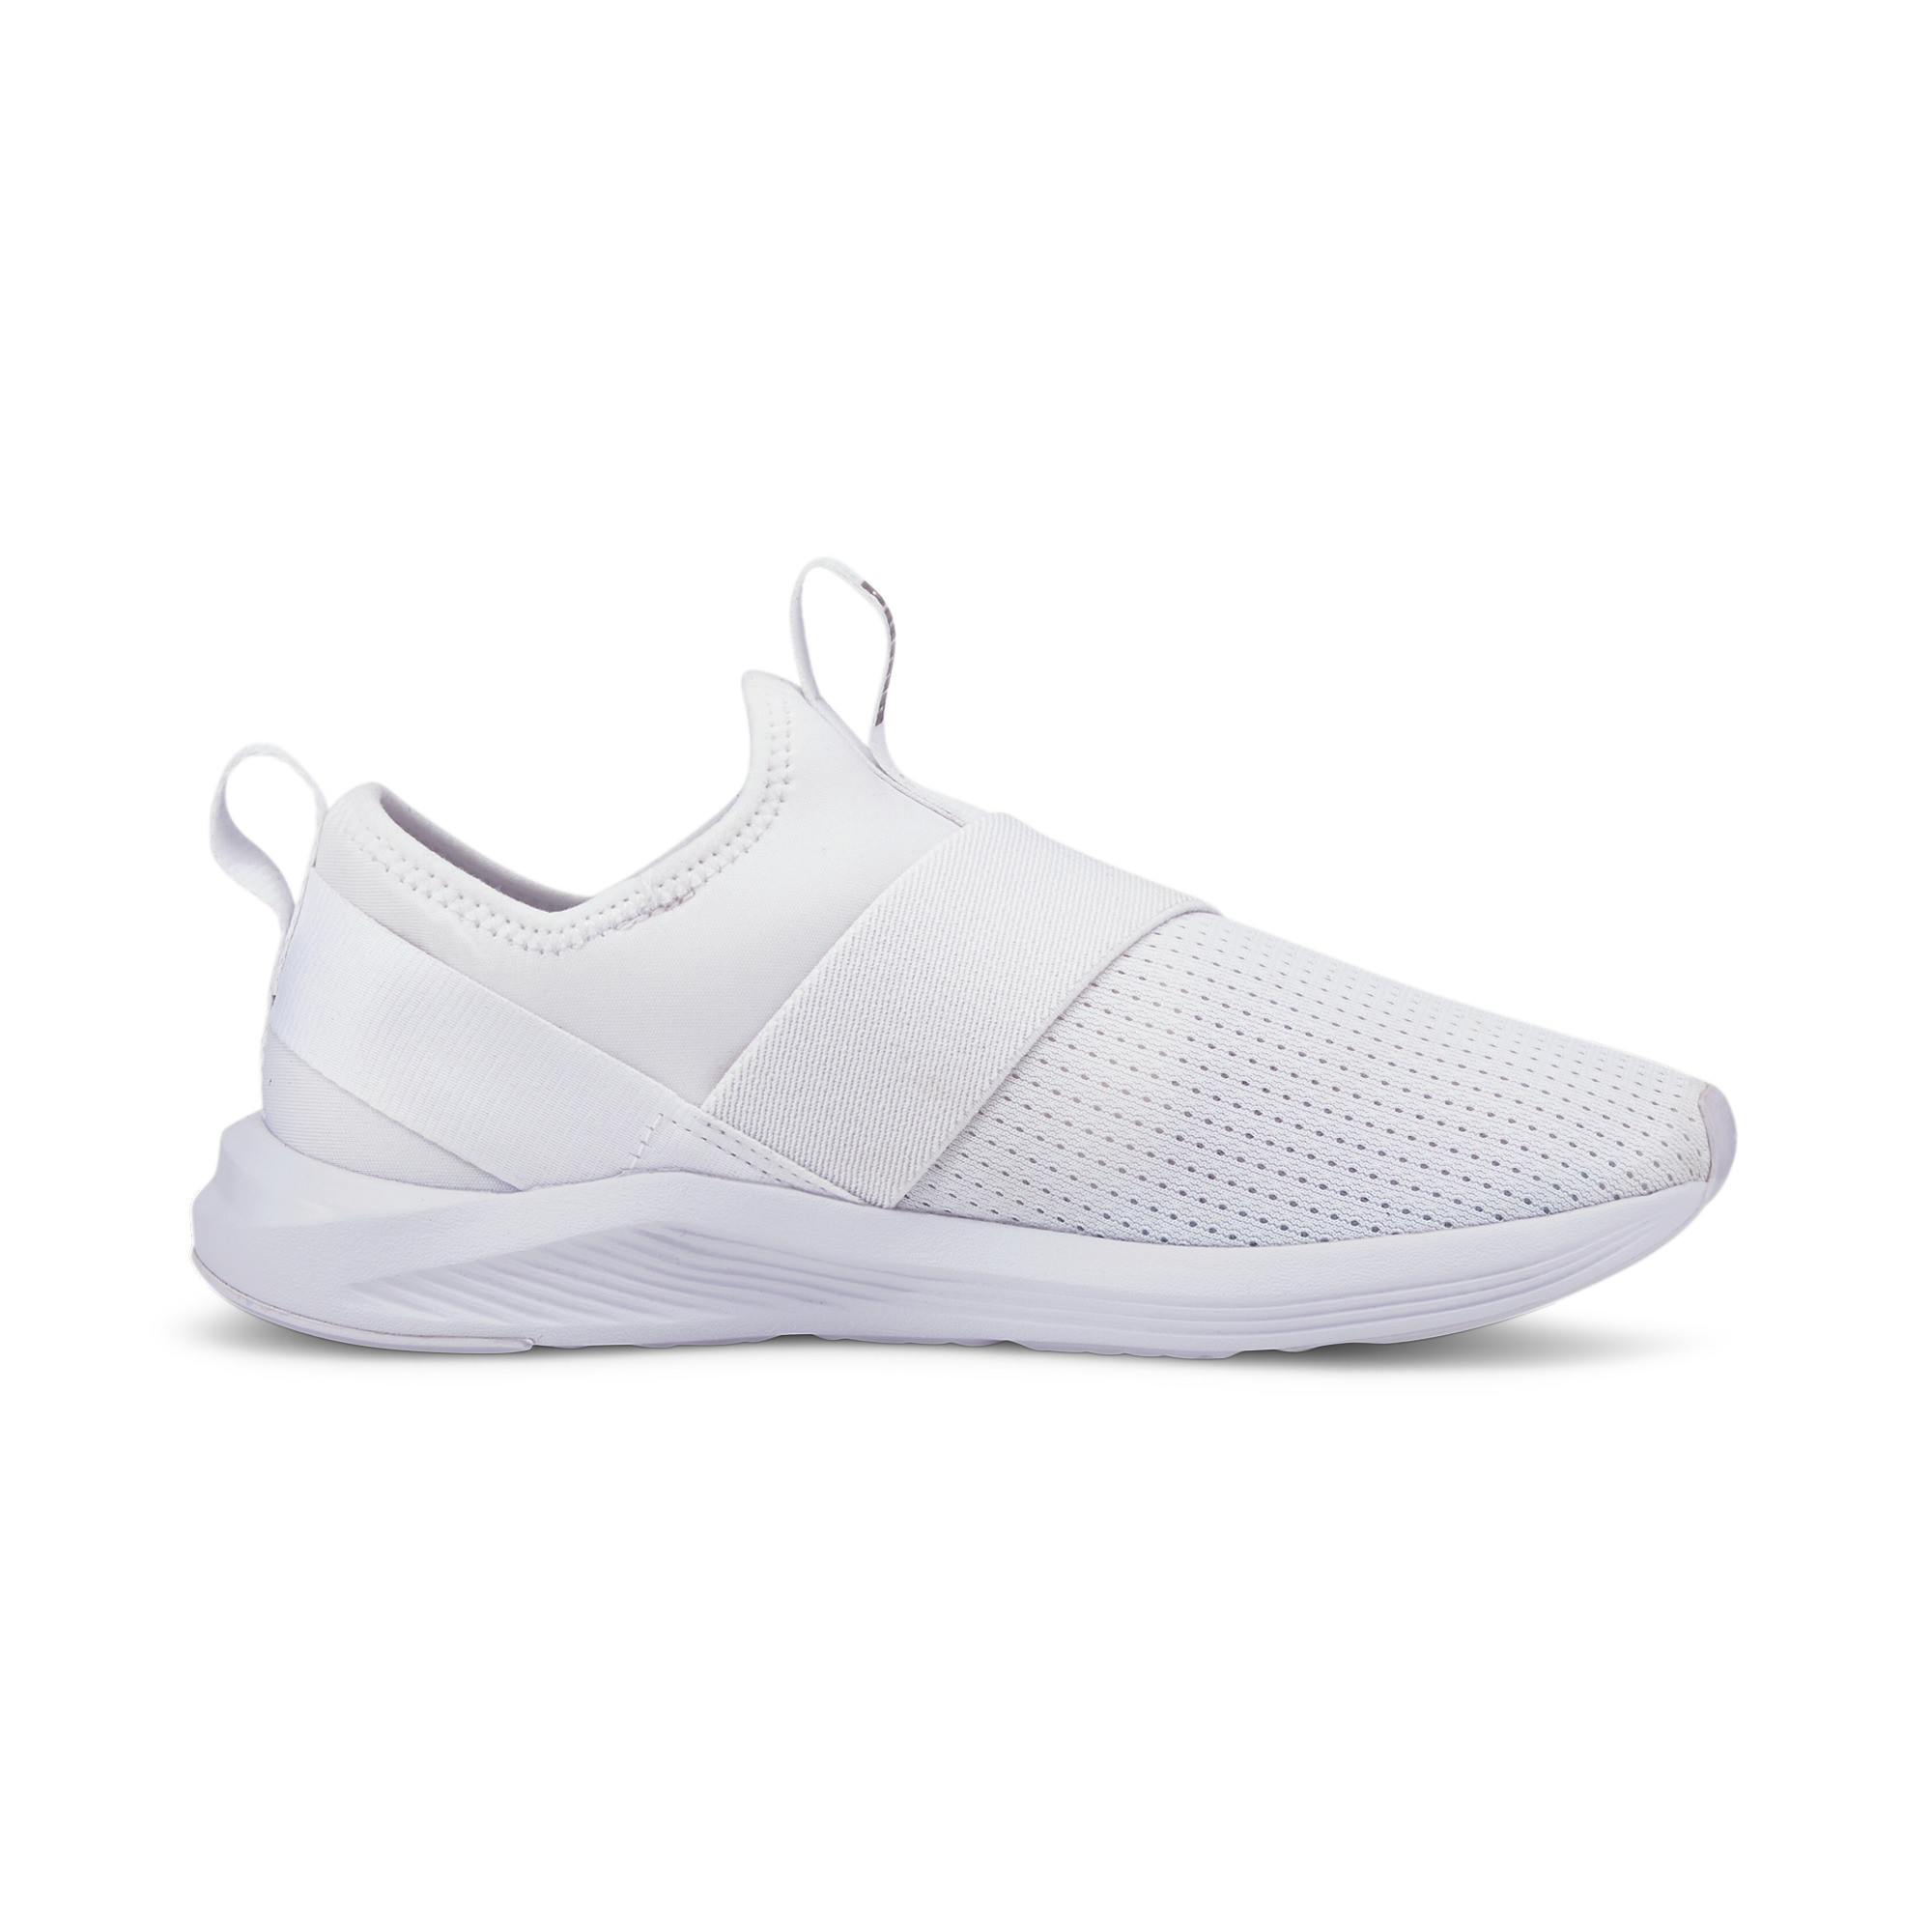 PUMA-Women-039-s-Prowl-Slip-On-Training-Shoes thumbnail 14